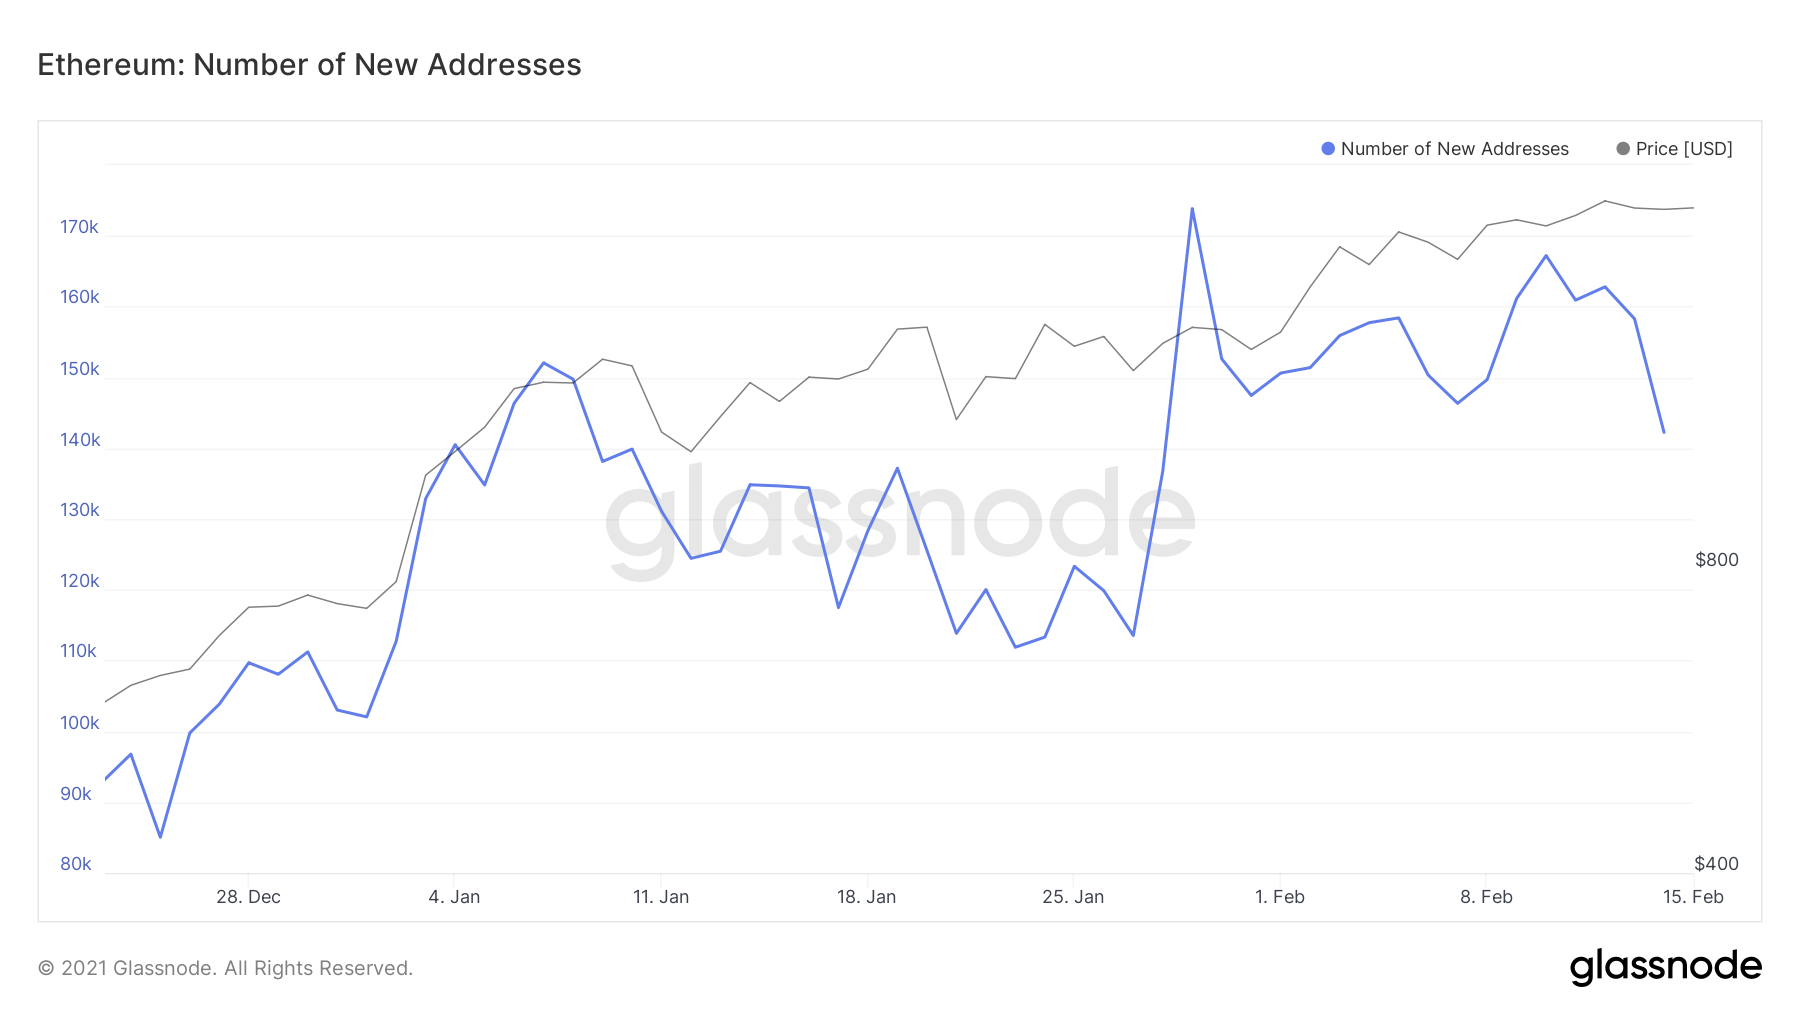 Number of New Ethereum Addresses by Glassnode